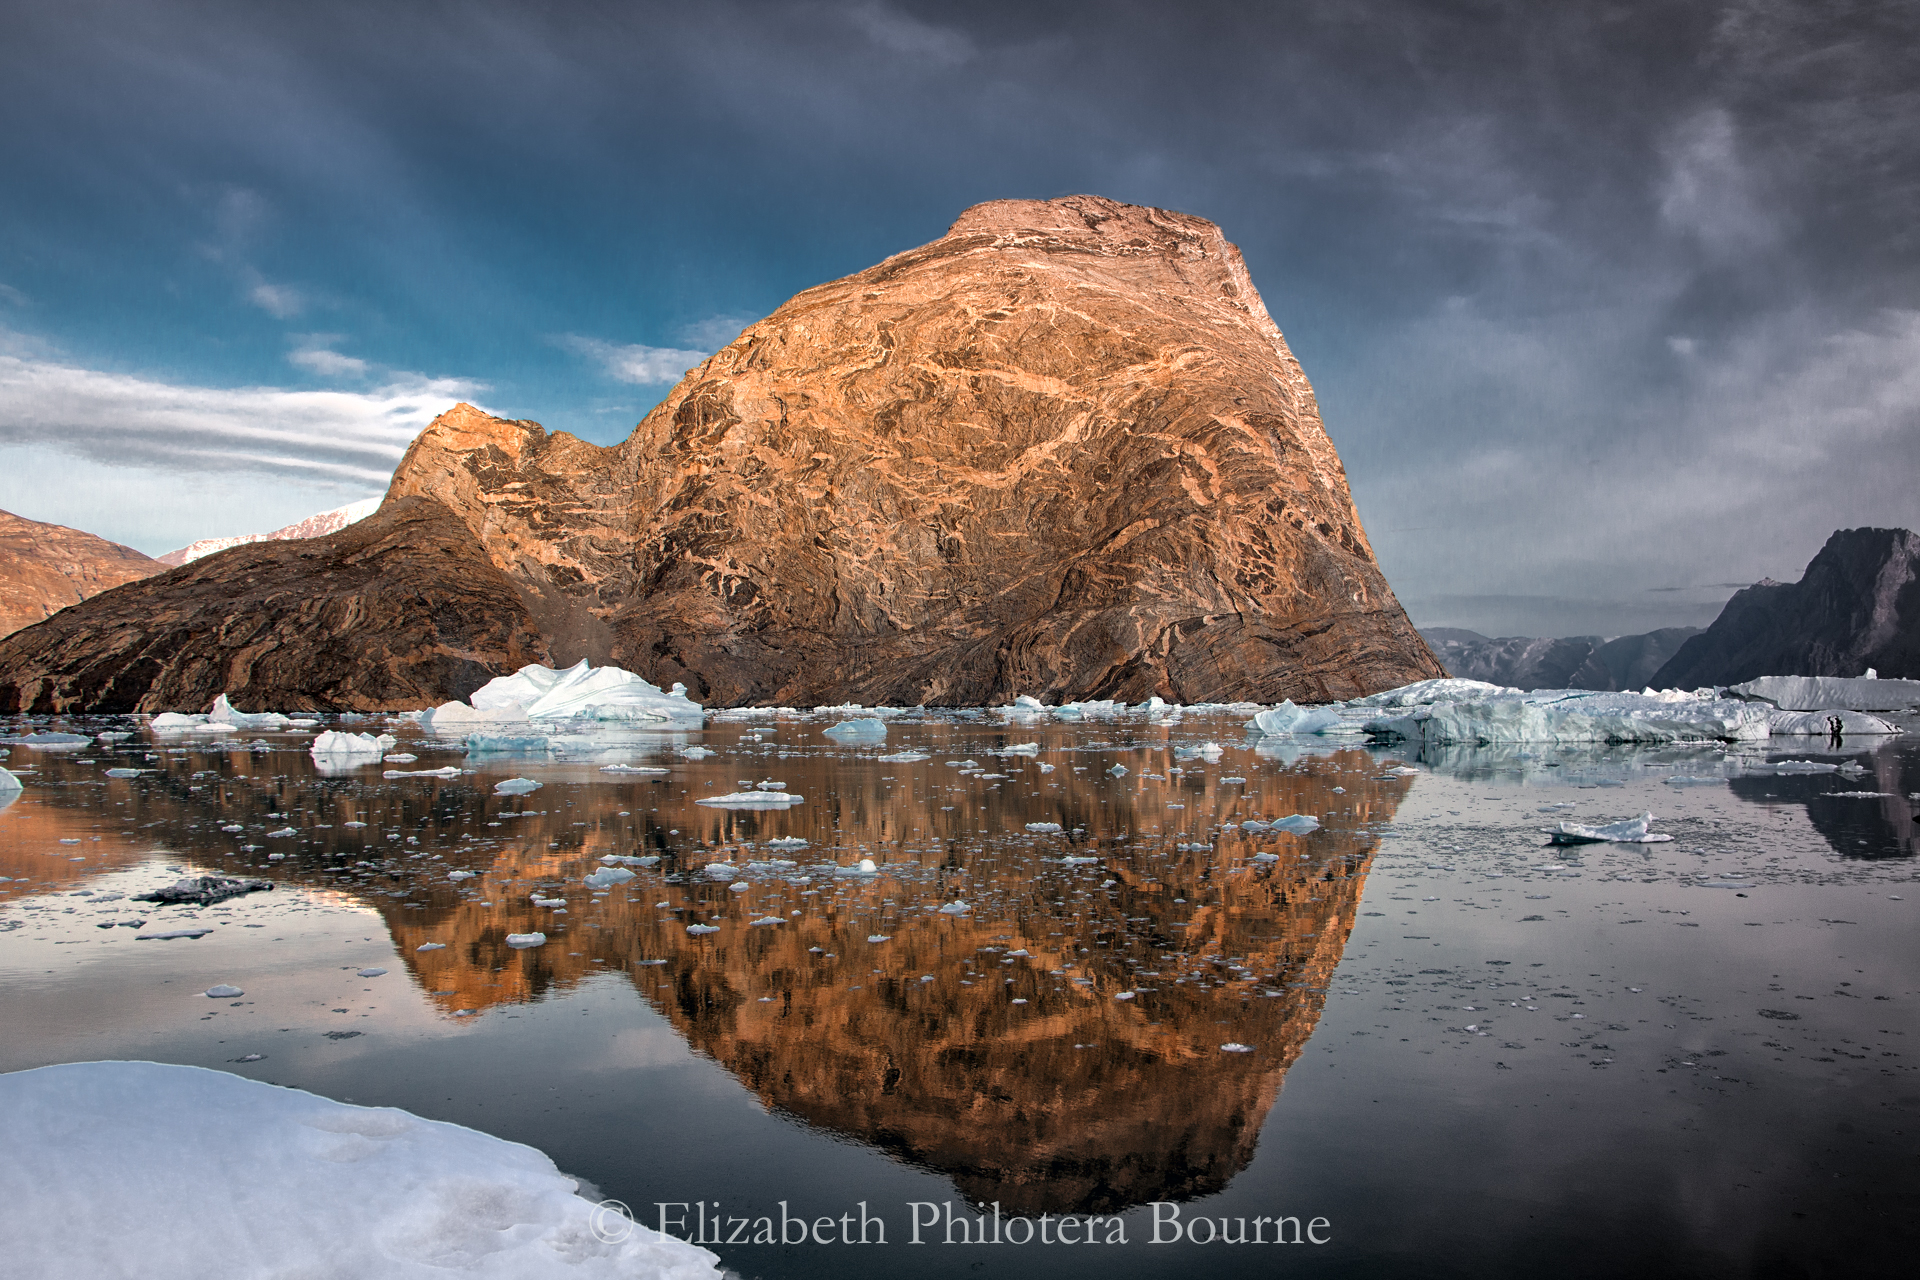 Orange striated rock with dramatic sky reflected in still water with icebergs in Greenland